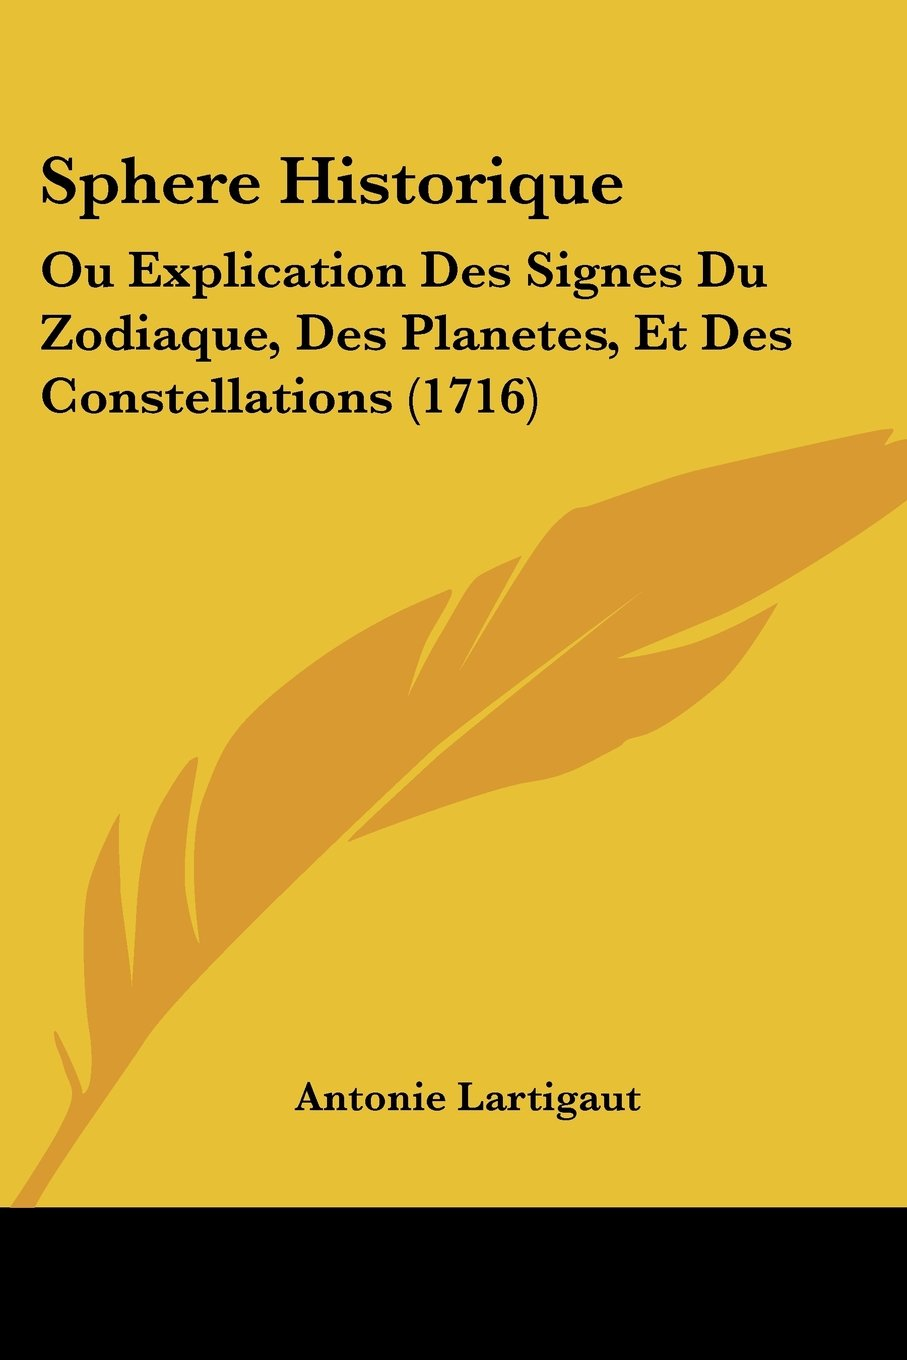 Download Sphere Historique: Ou Explication Des Signes Du Zodiaque, Des Planetes, Et Des Constellations (1716) (French Edition) pdf